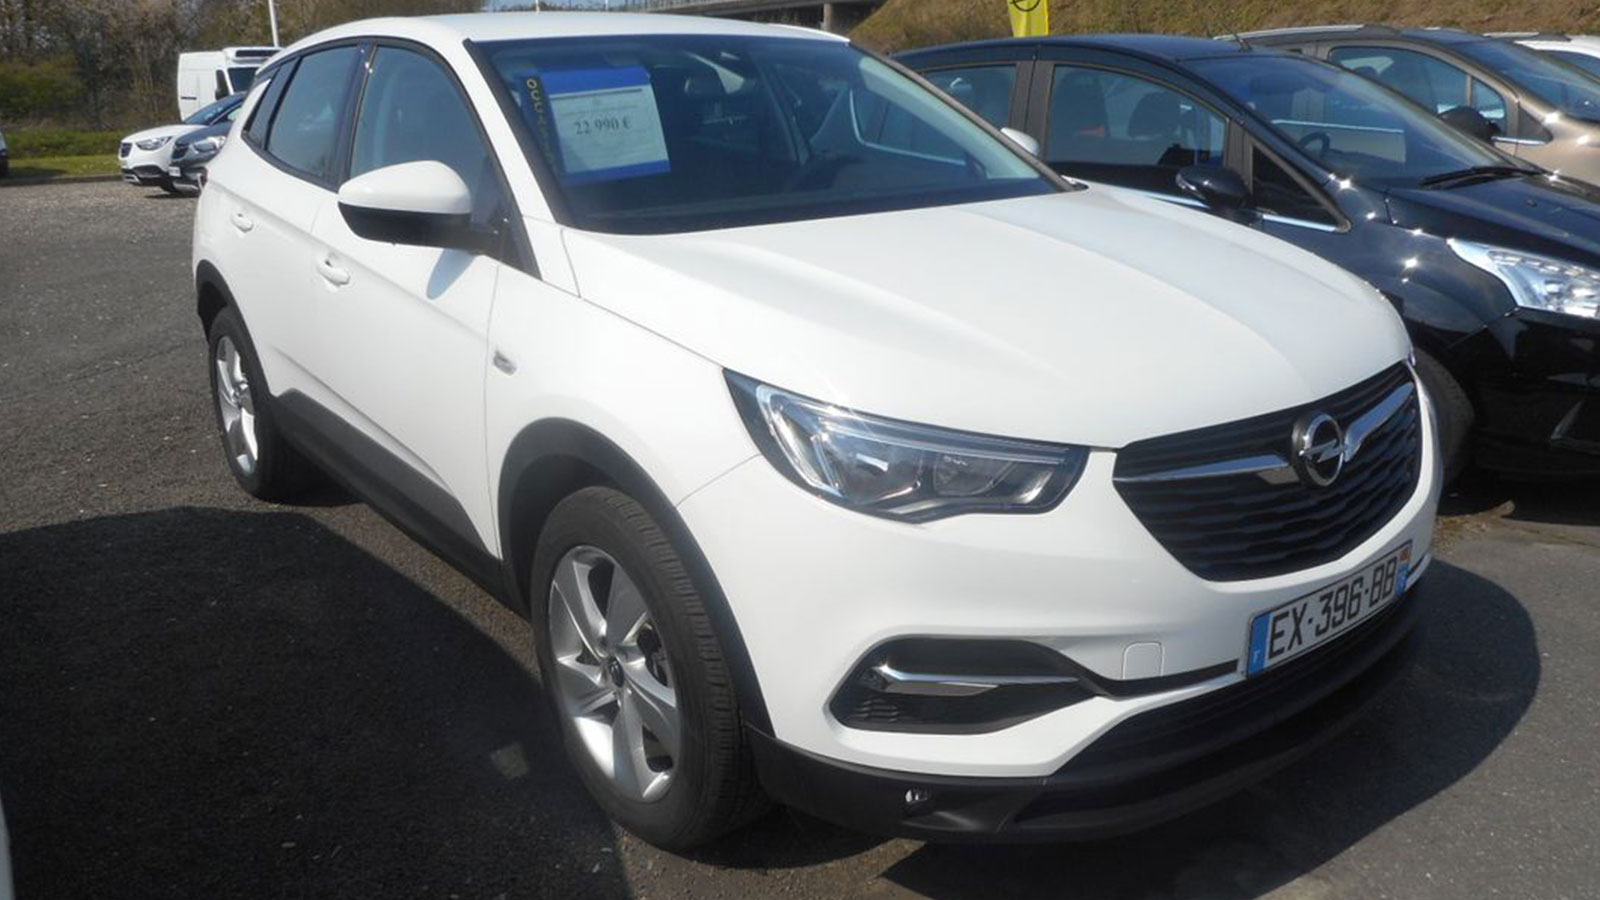 OPEL GRANDLAND X 1.2 TURBO 130CH EDITION